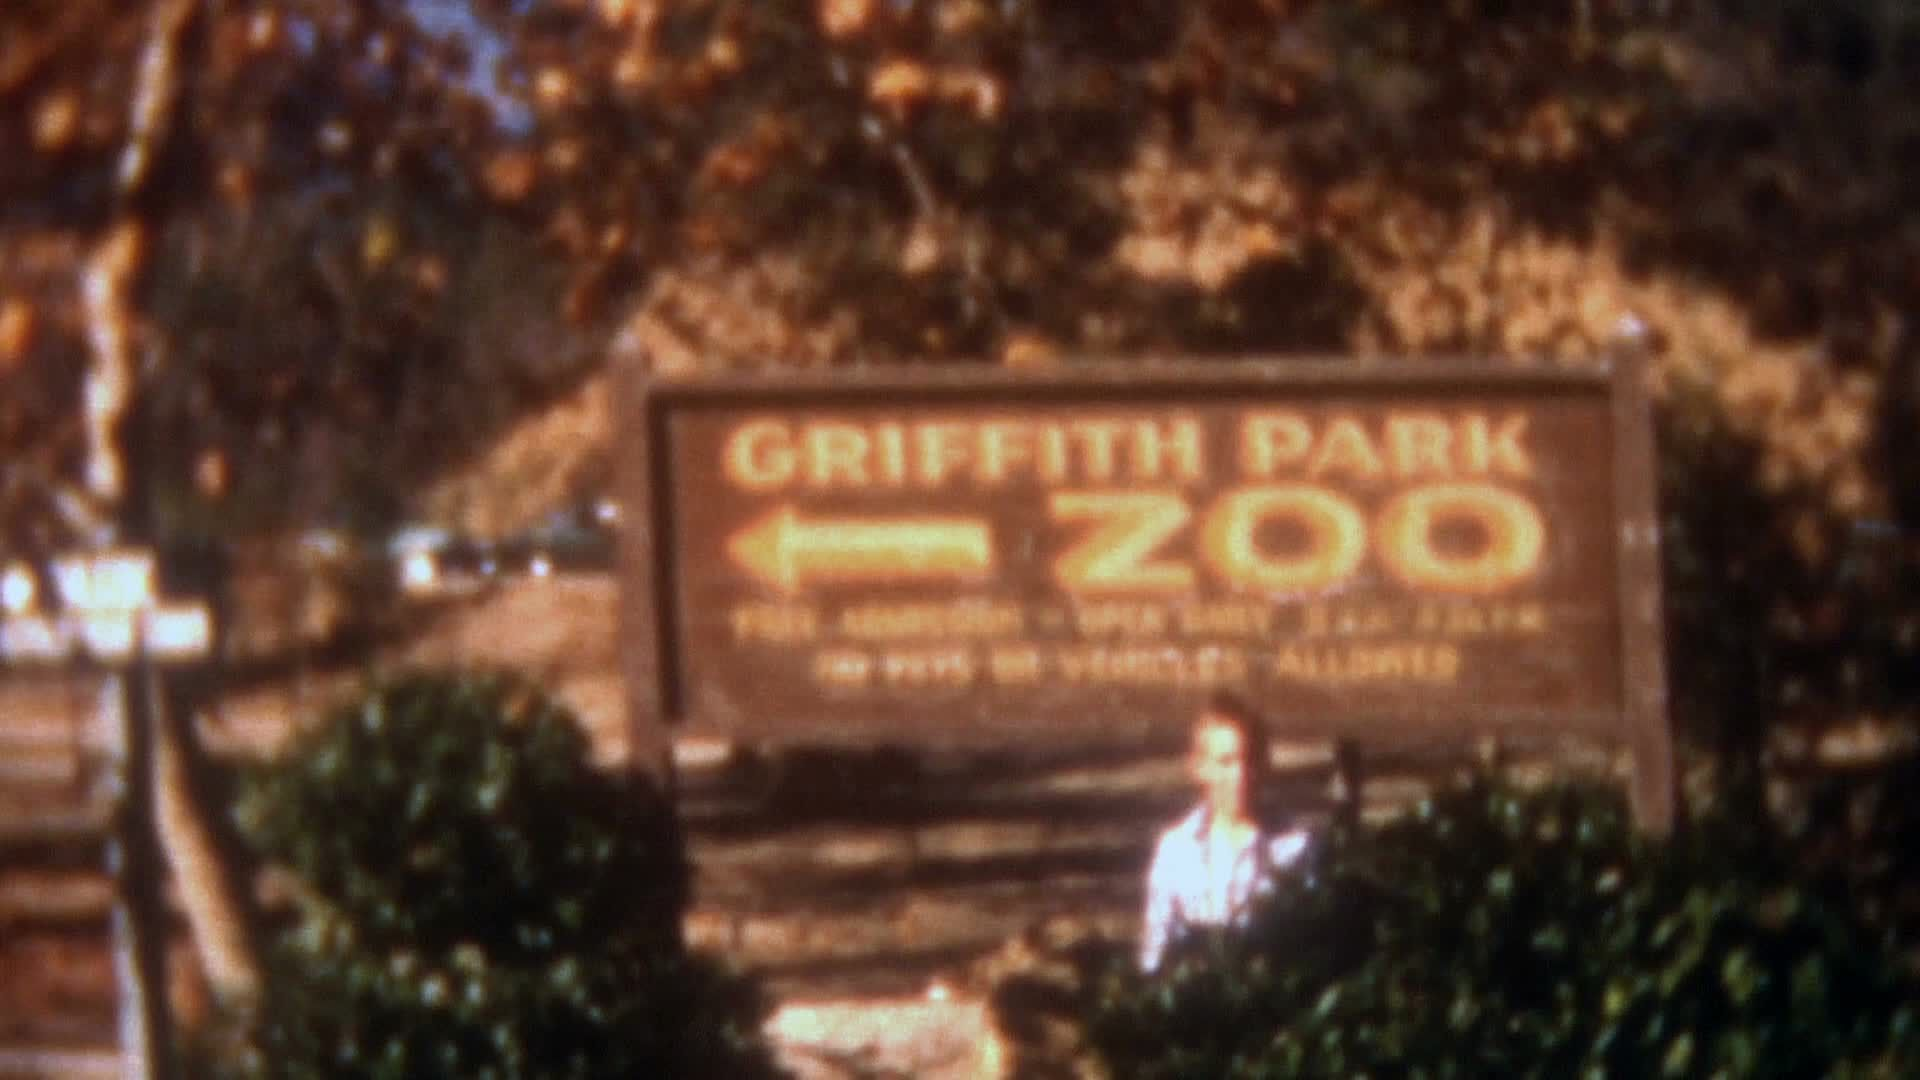 Old Vintage Film 1950s Old La Zoo Griffith Park Sea Lion Birds Animals Sign Stock Footage Zoo Griffith Park La Vintage Film Griffith Park Pet Signs